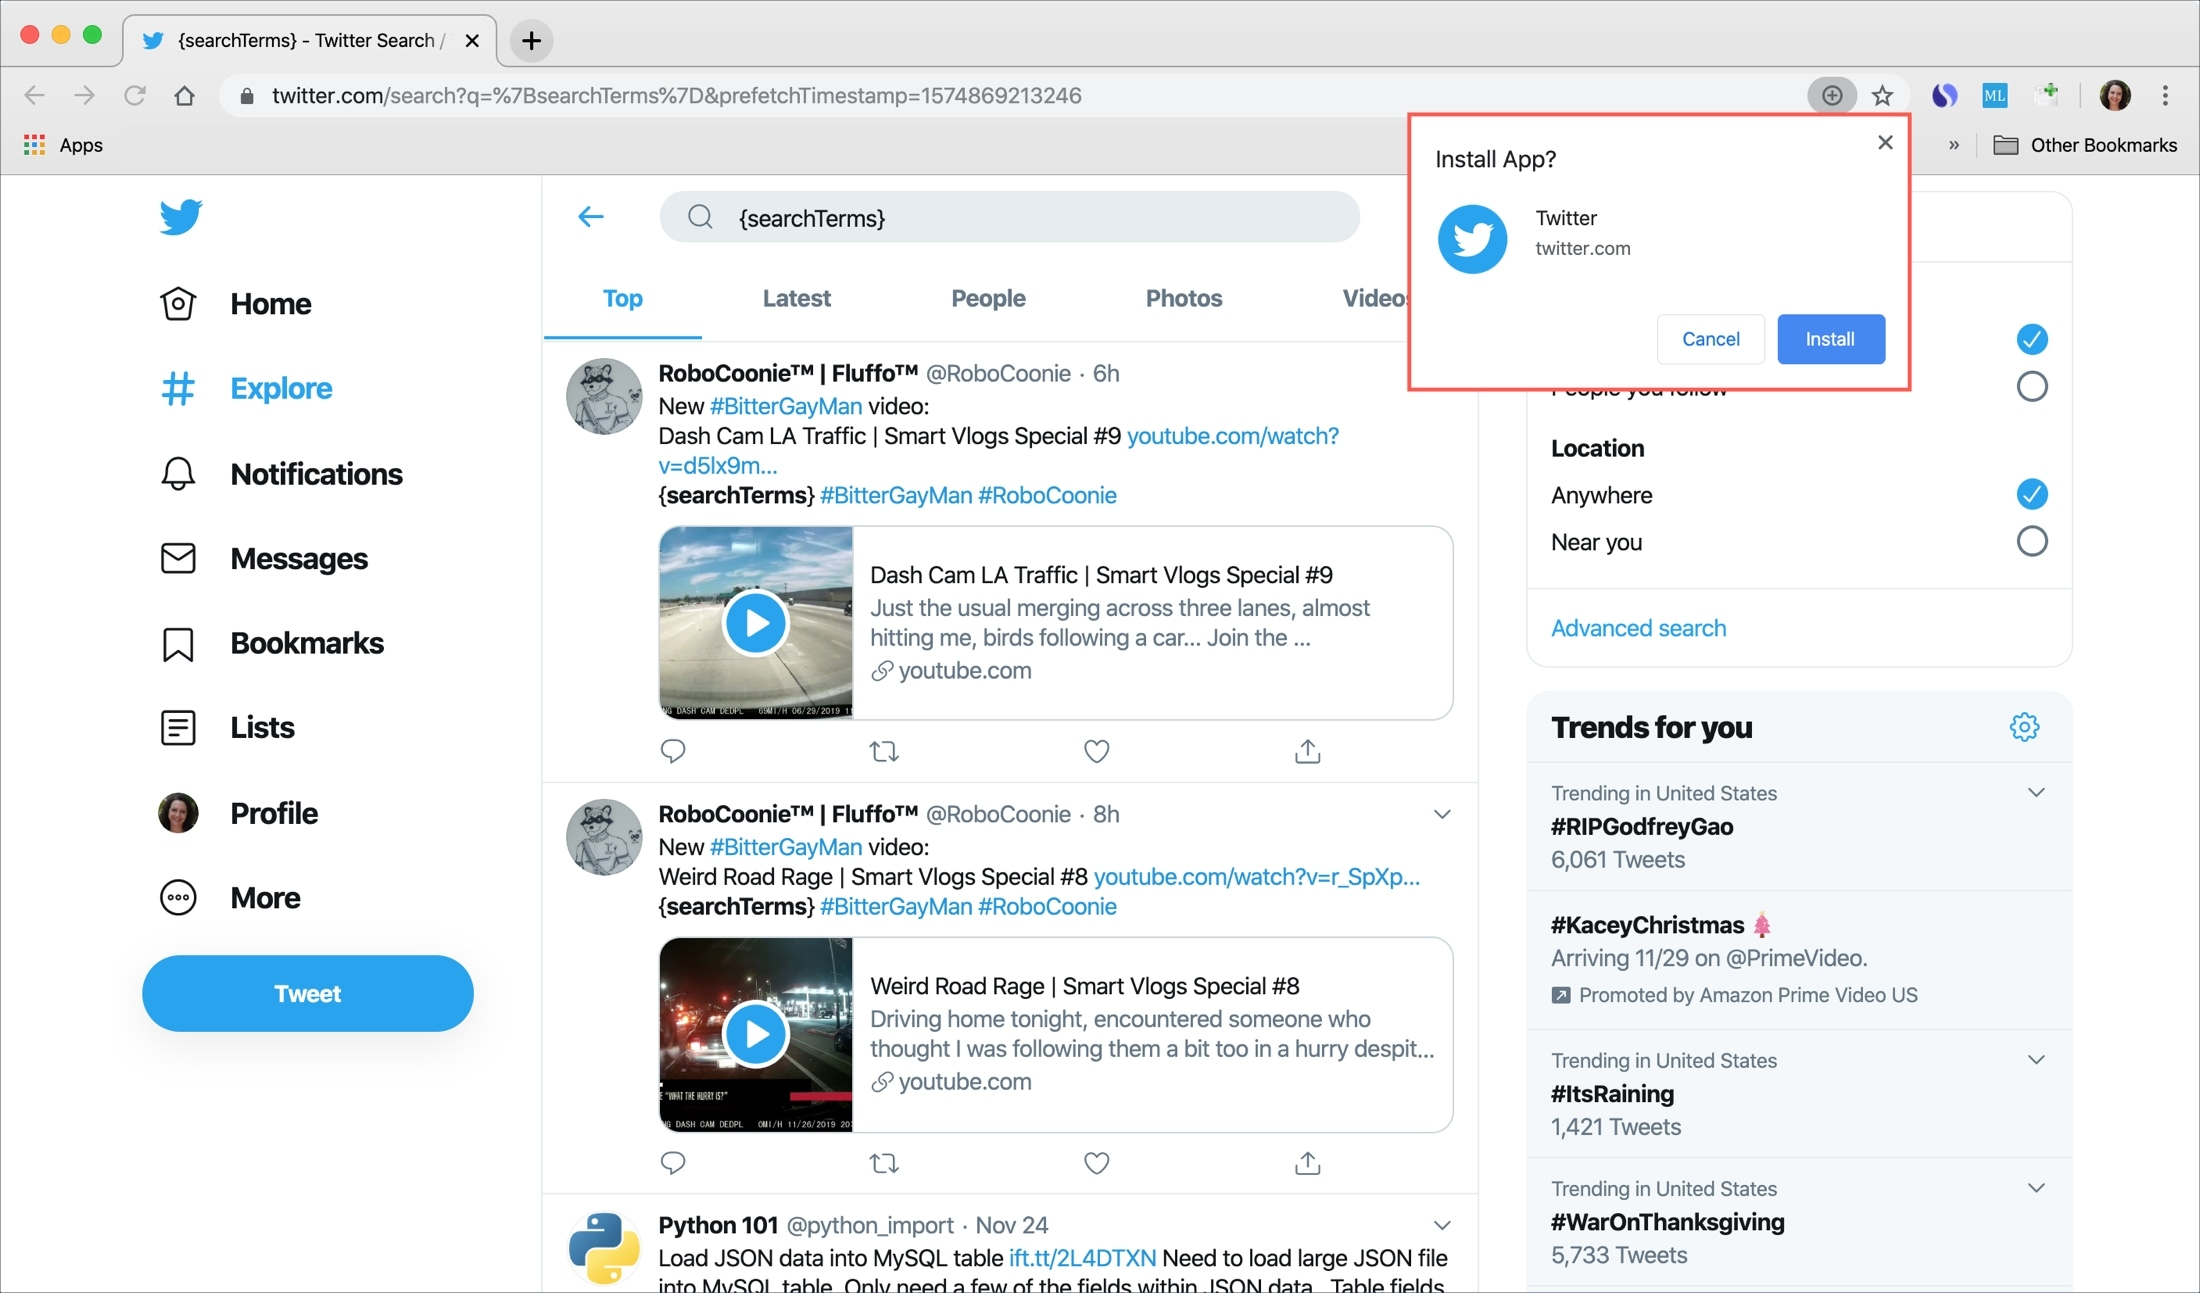 Chrome Install Twitter Pop-up